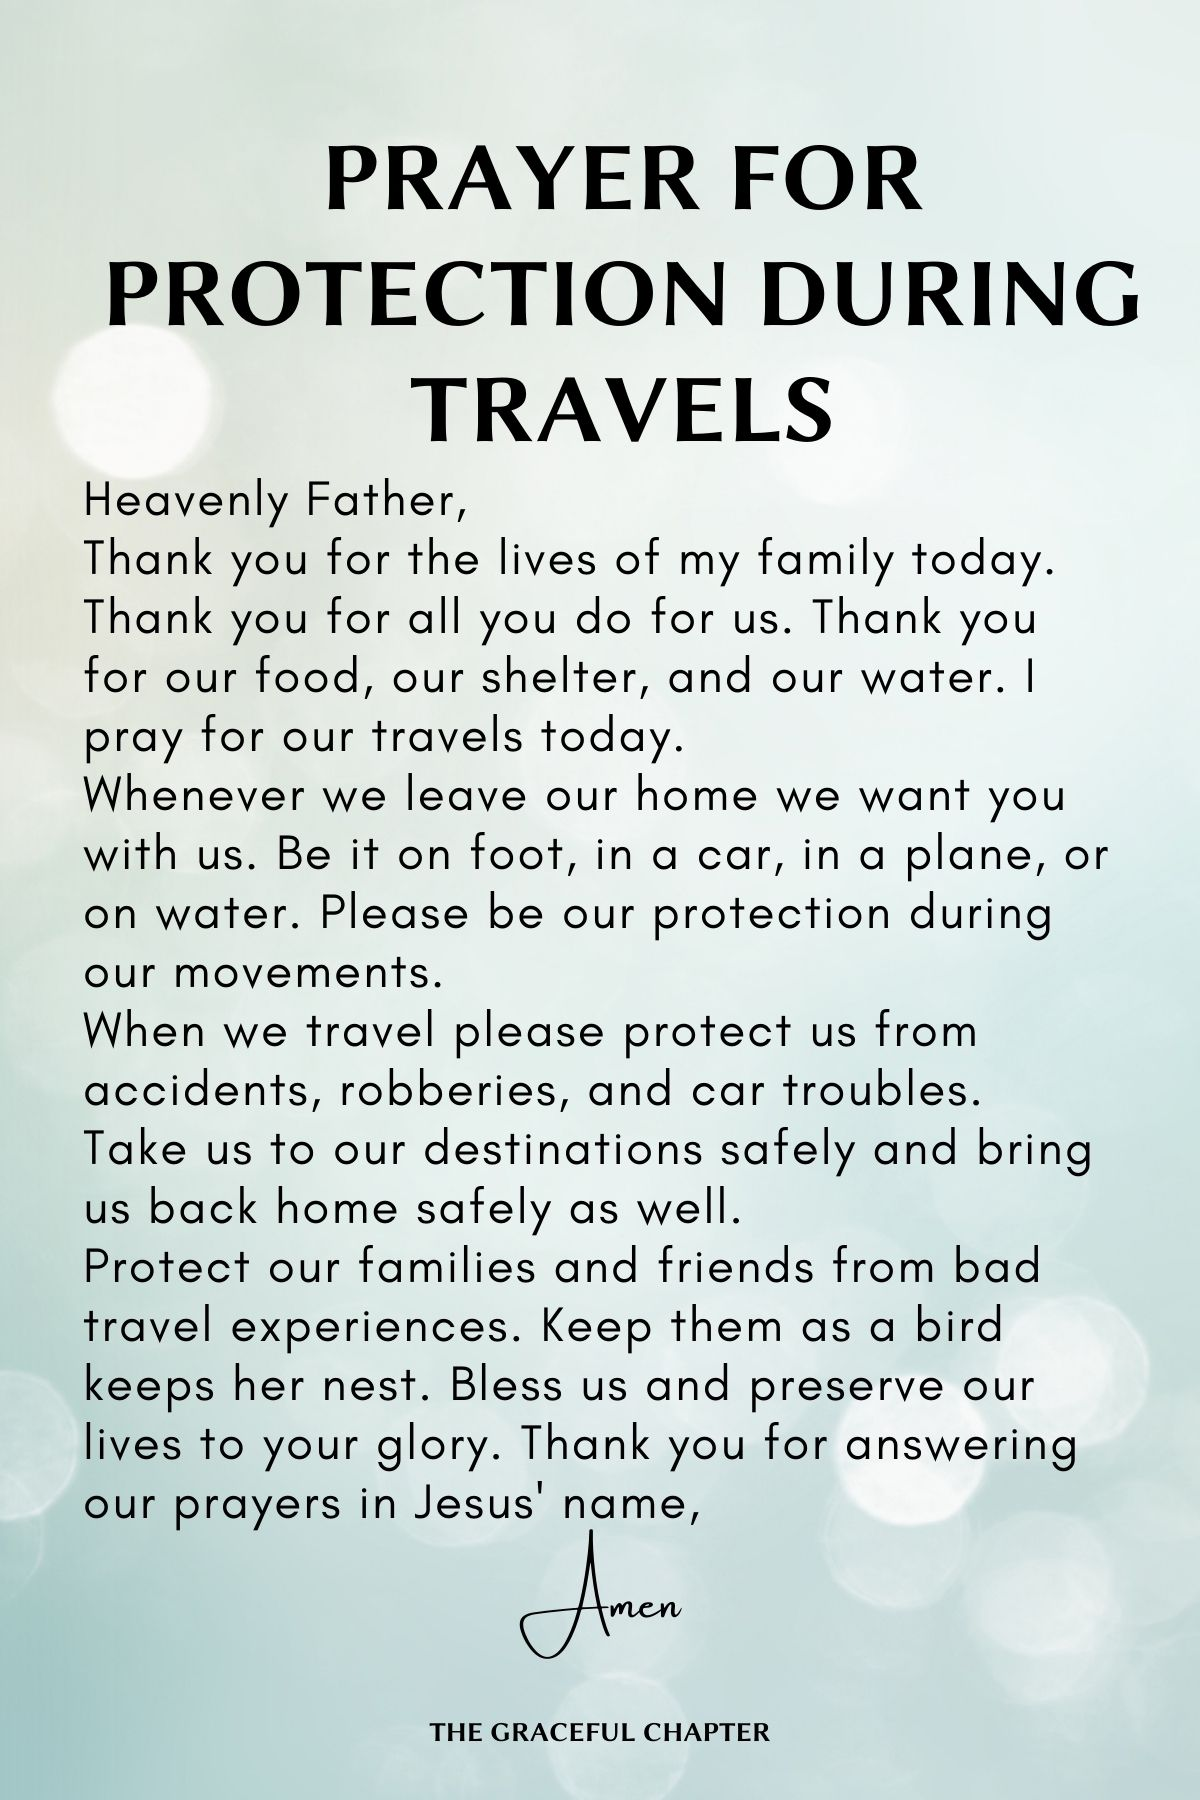 Protection during travels